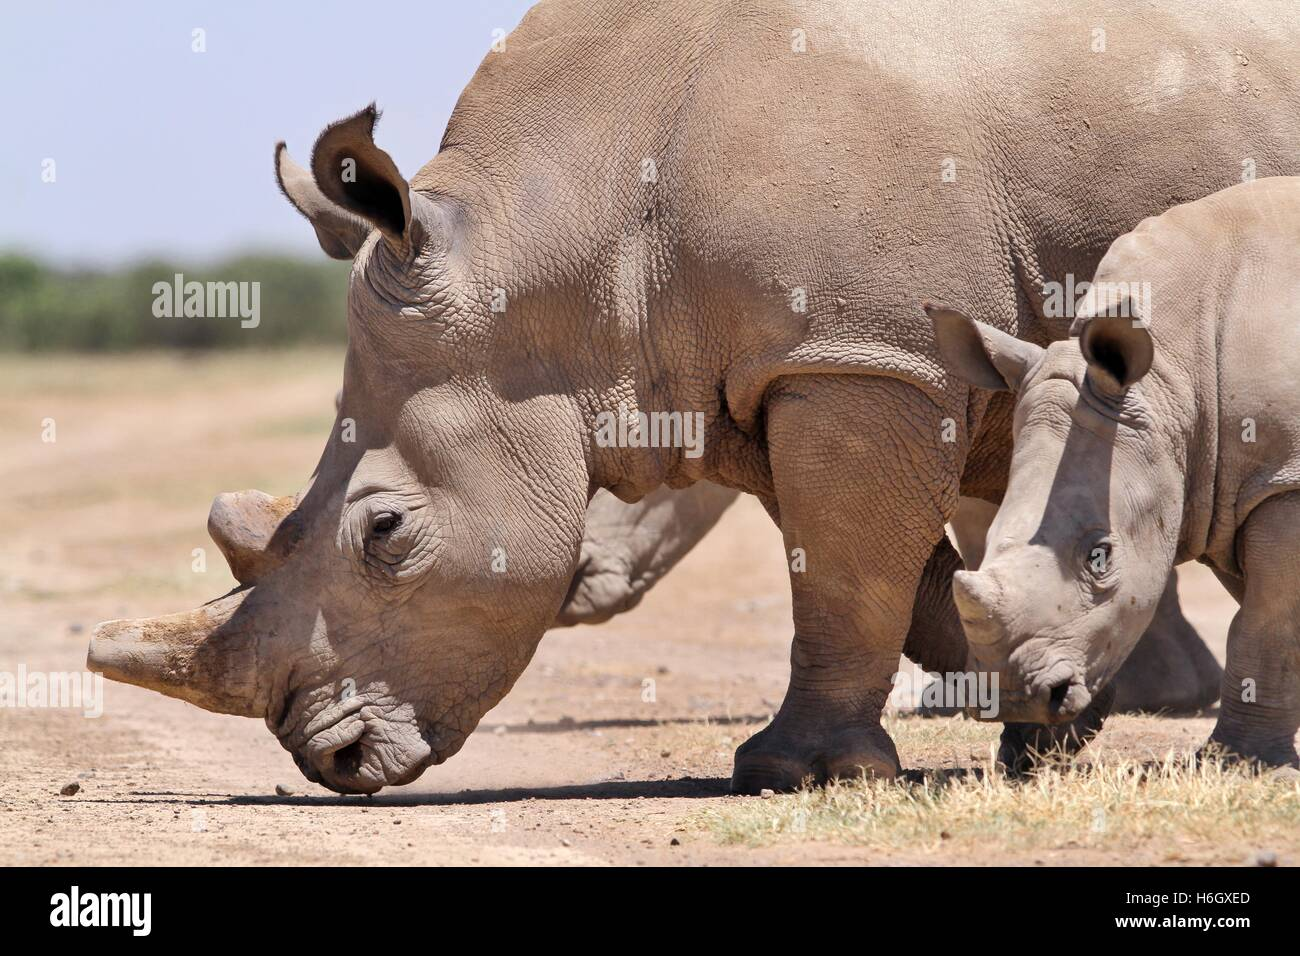 A White Rhino mother walking with her calf at Ol Pajeta Conservancy, Nanyuki, Kenya - Stock Image